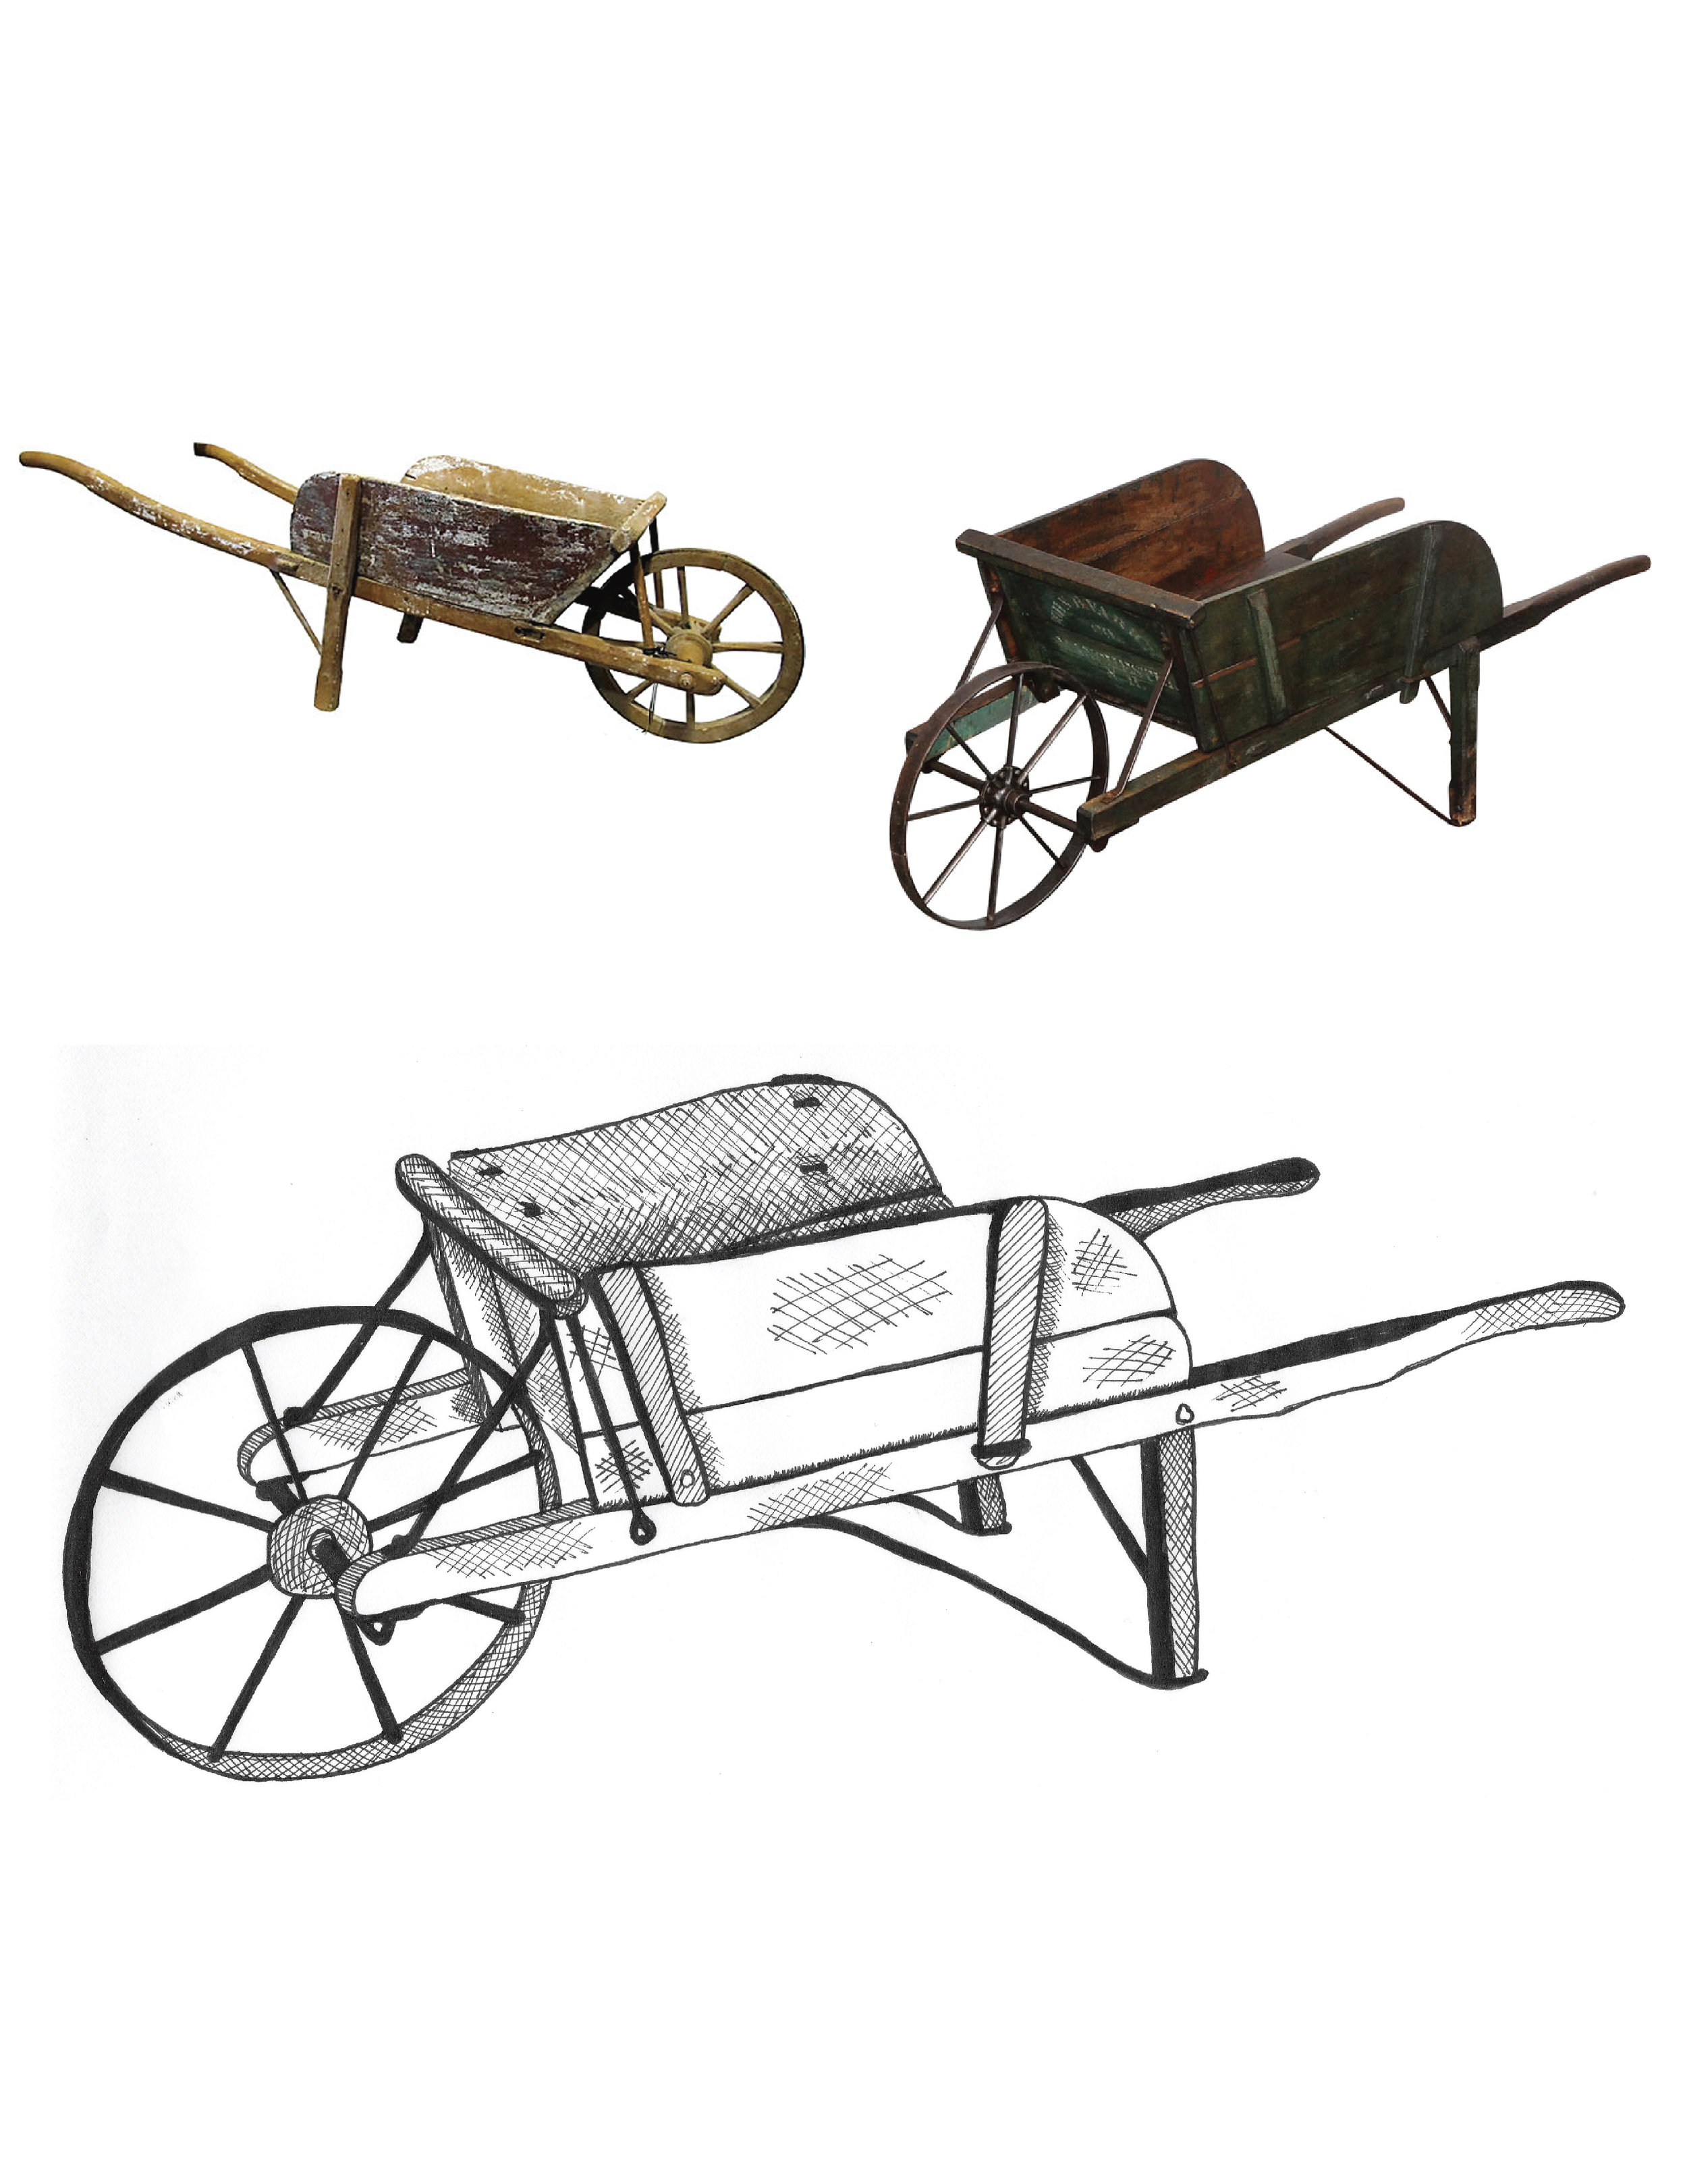 Antique Wheelbarrows   These photos of antique wheelbarrows really resonated with the client. The rendering shown here plays off of antique elements from both and lends itself to a variety of applications both within primary logos as well as other design motifs across the brand.  ˙